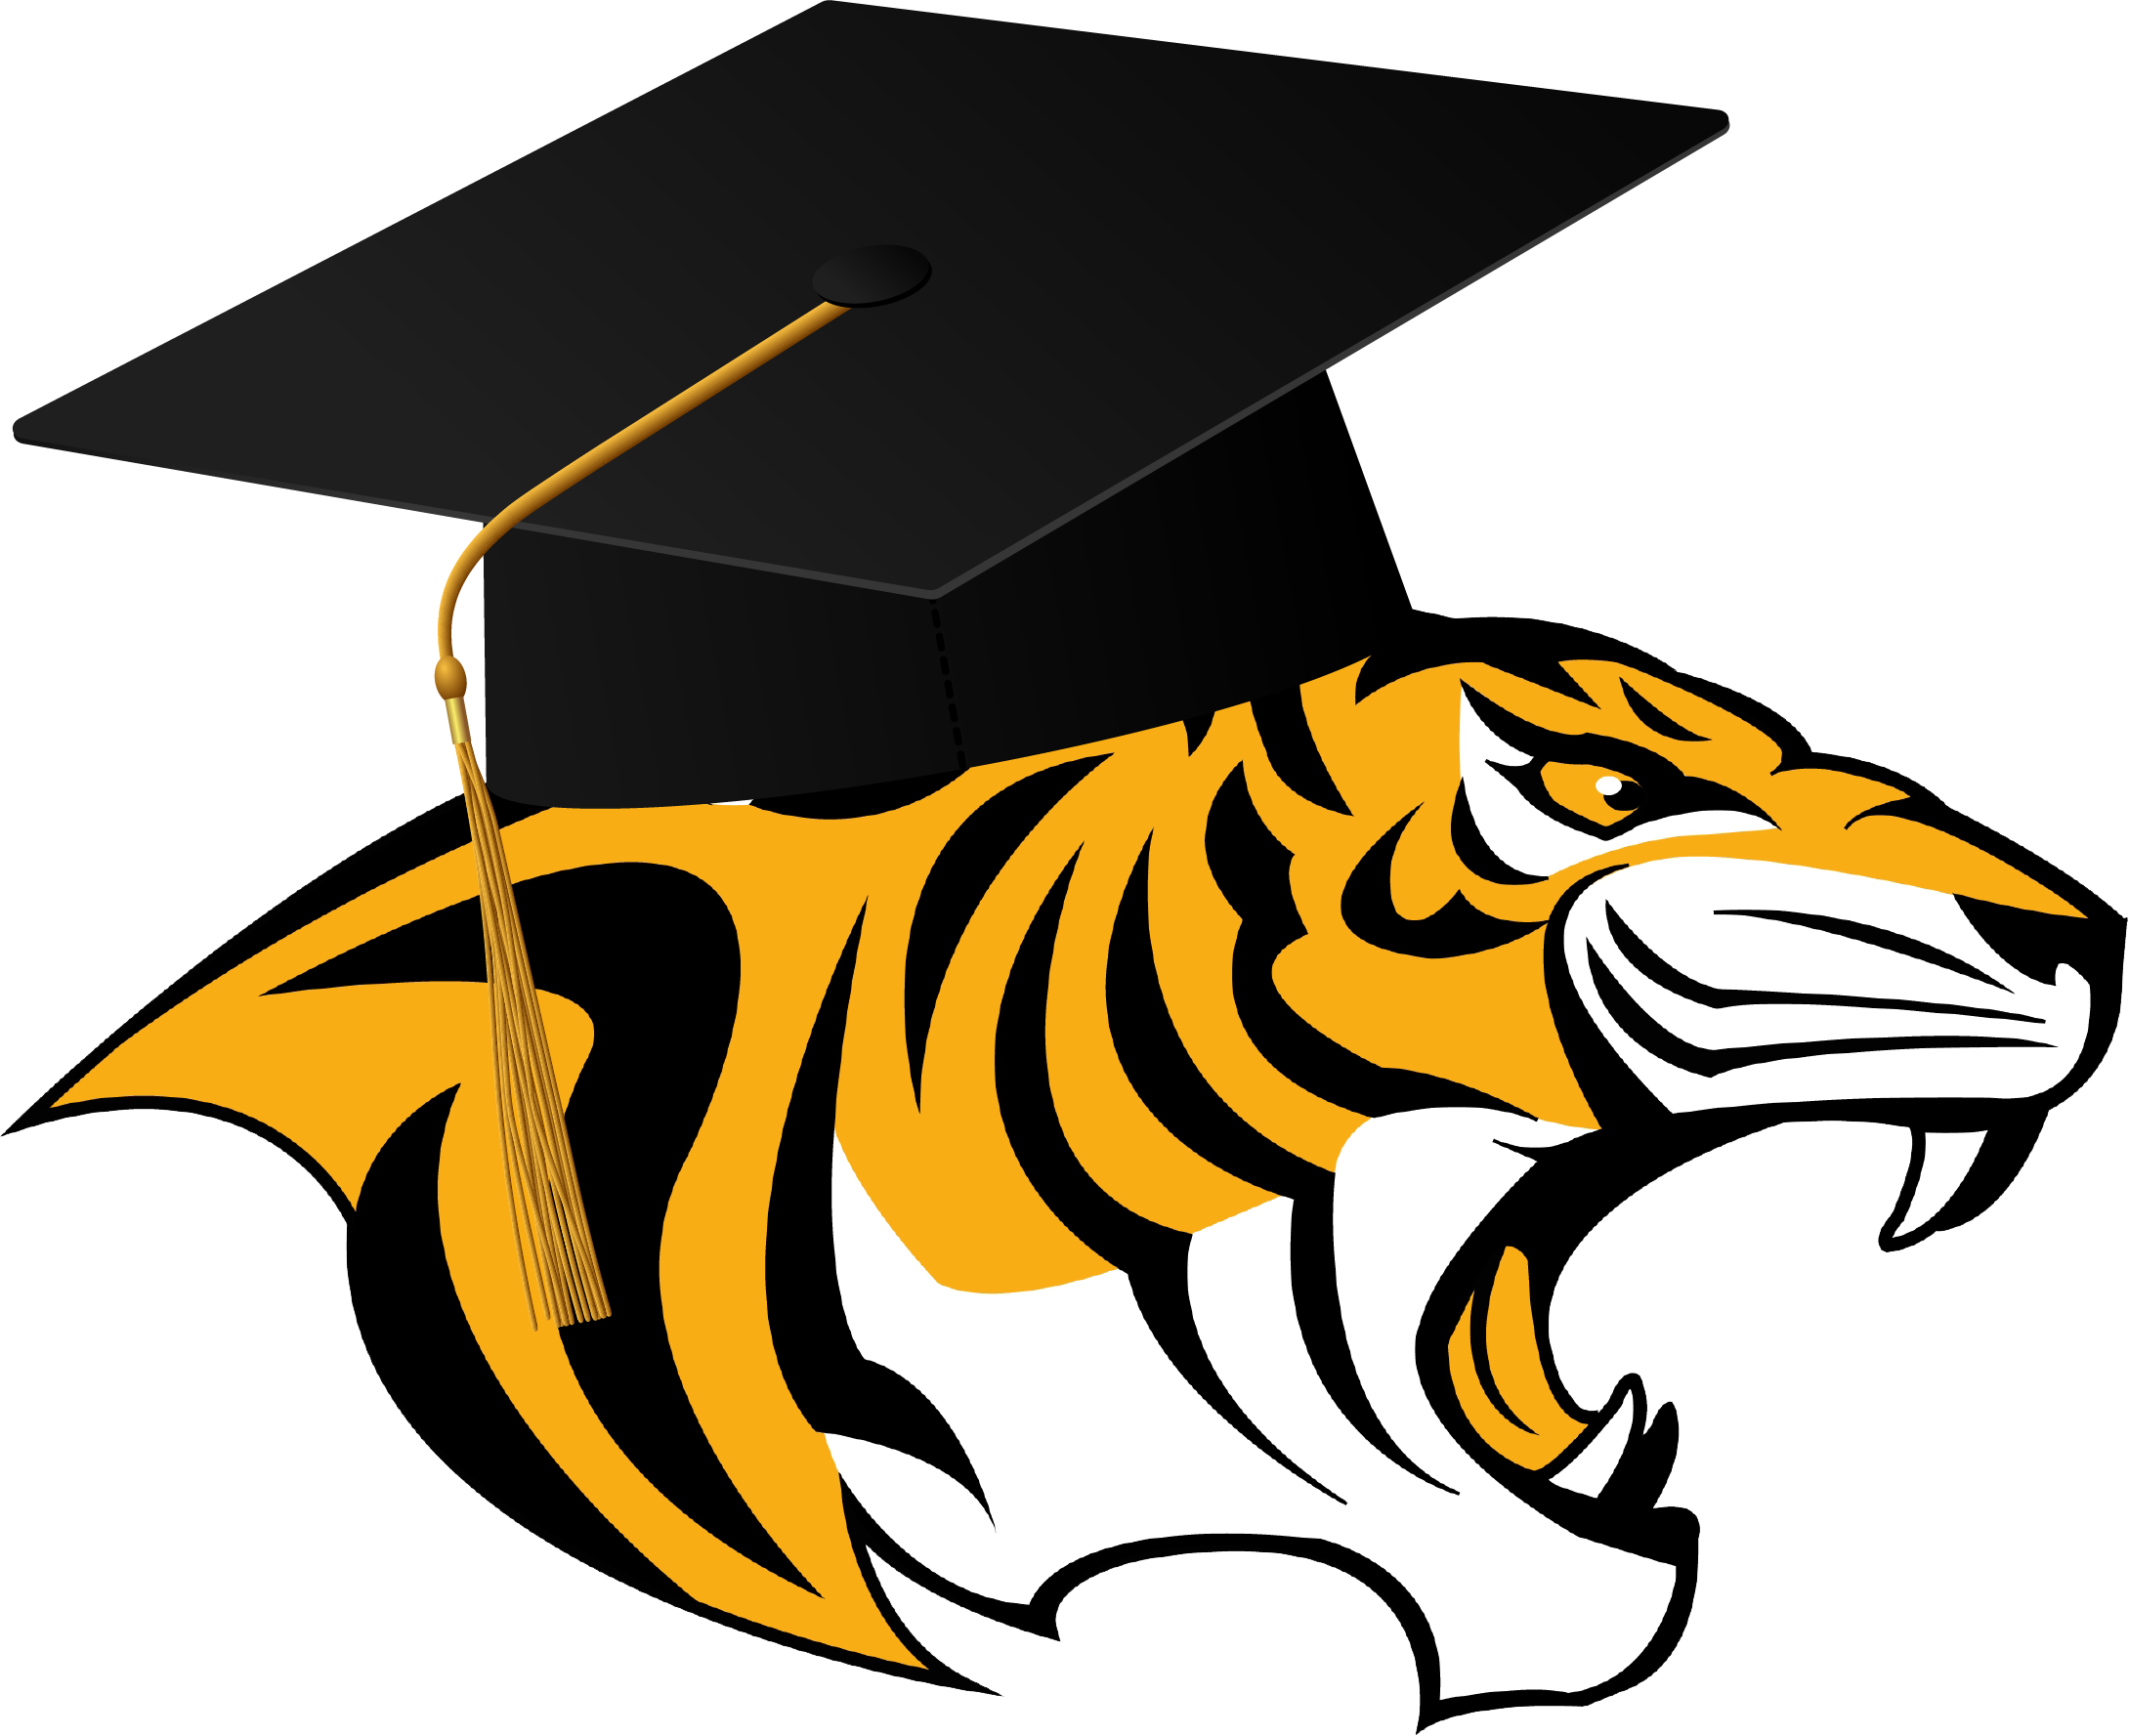 Tiger with cap